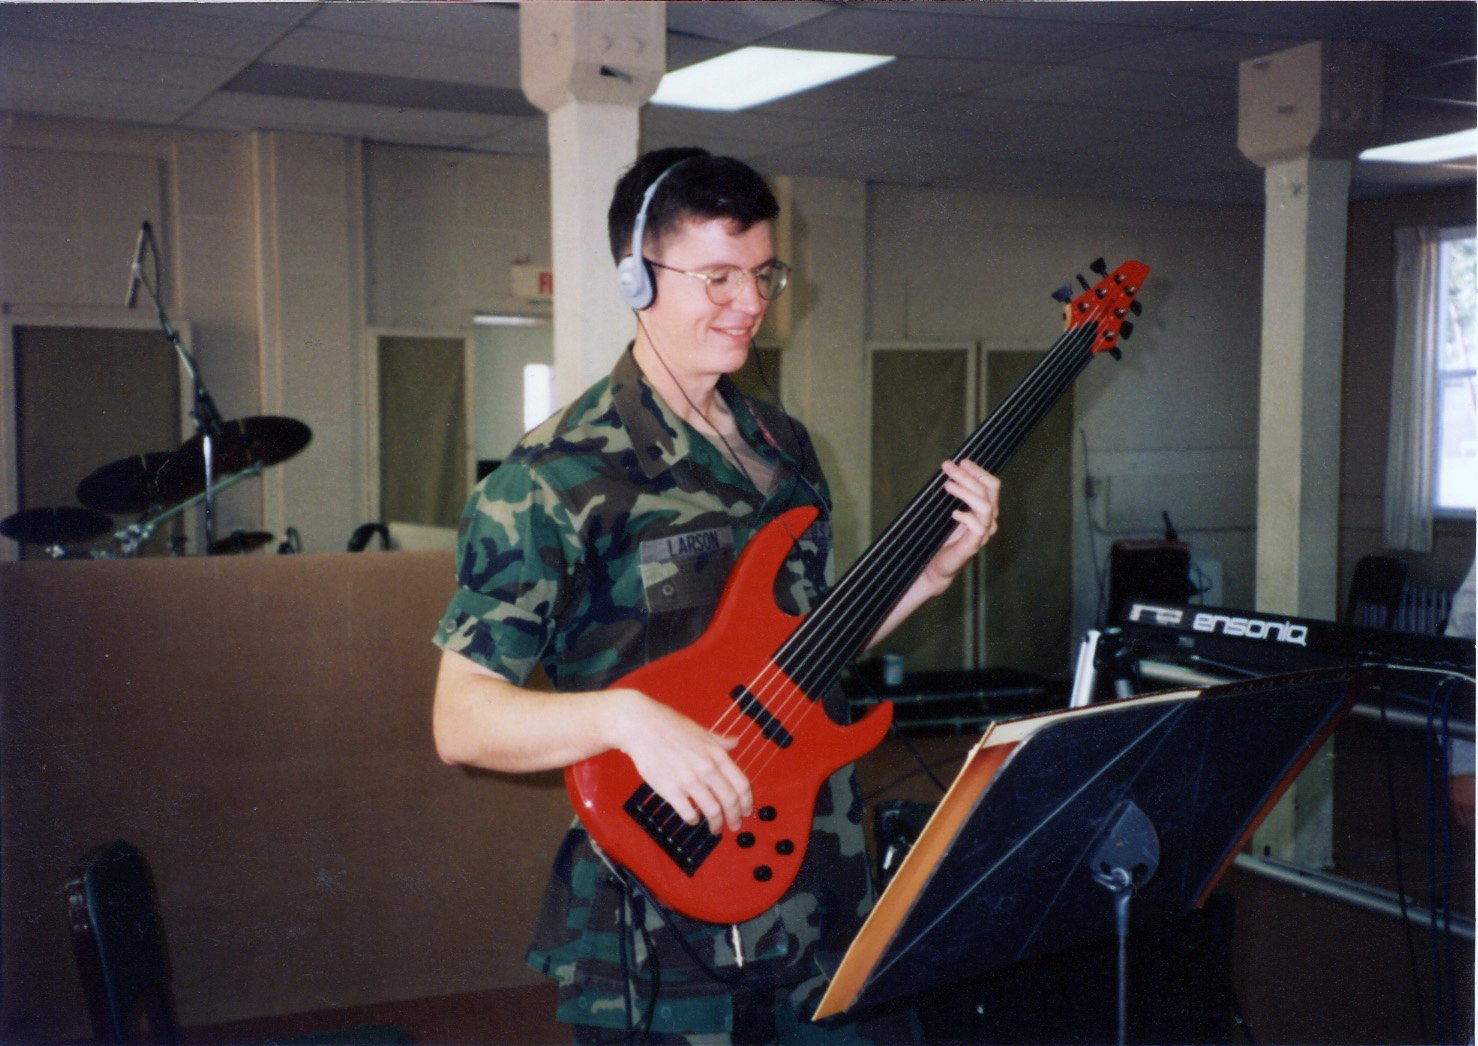 SPC Larson rocking the fretless 6-string bass for the US Army circa 1984.